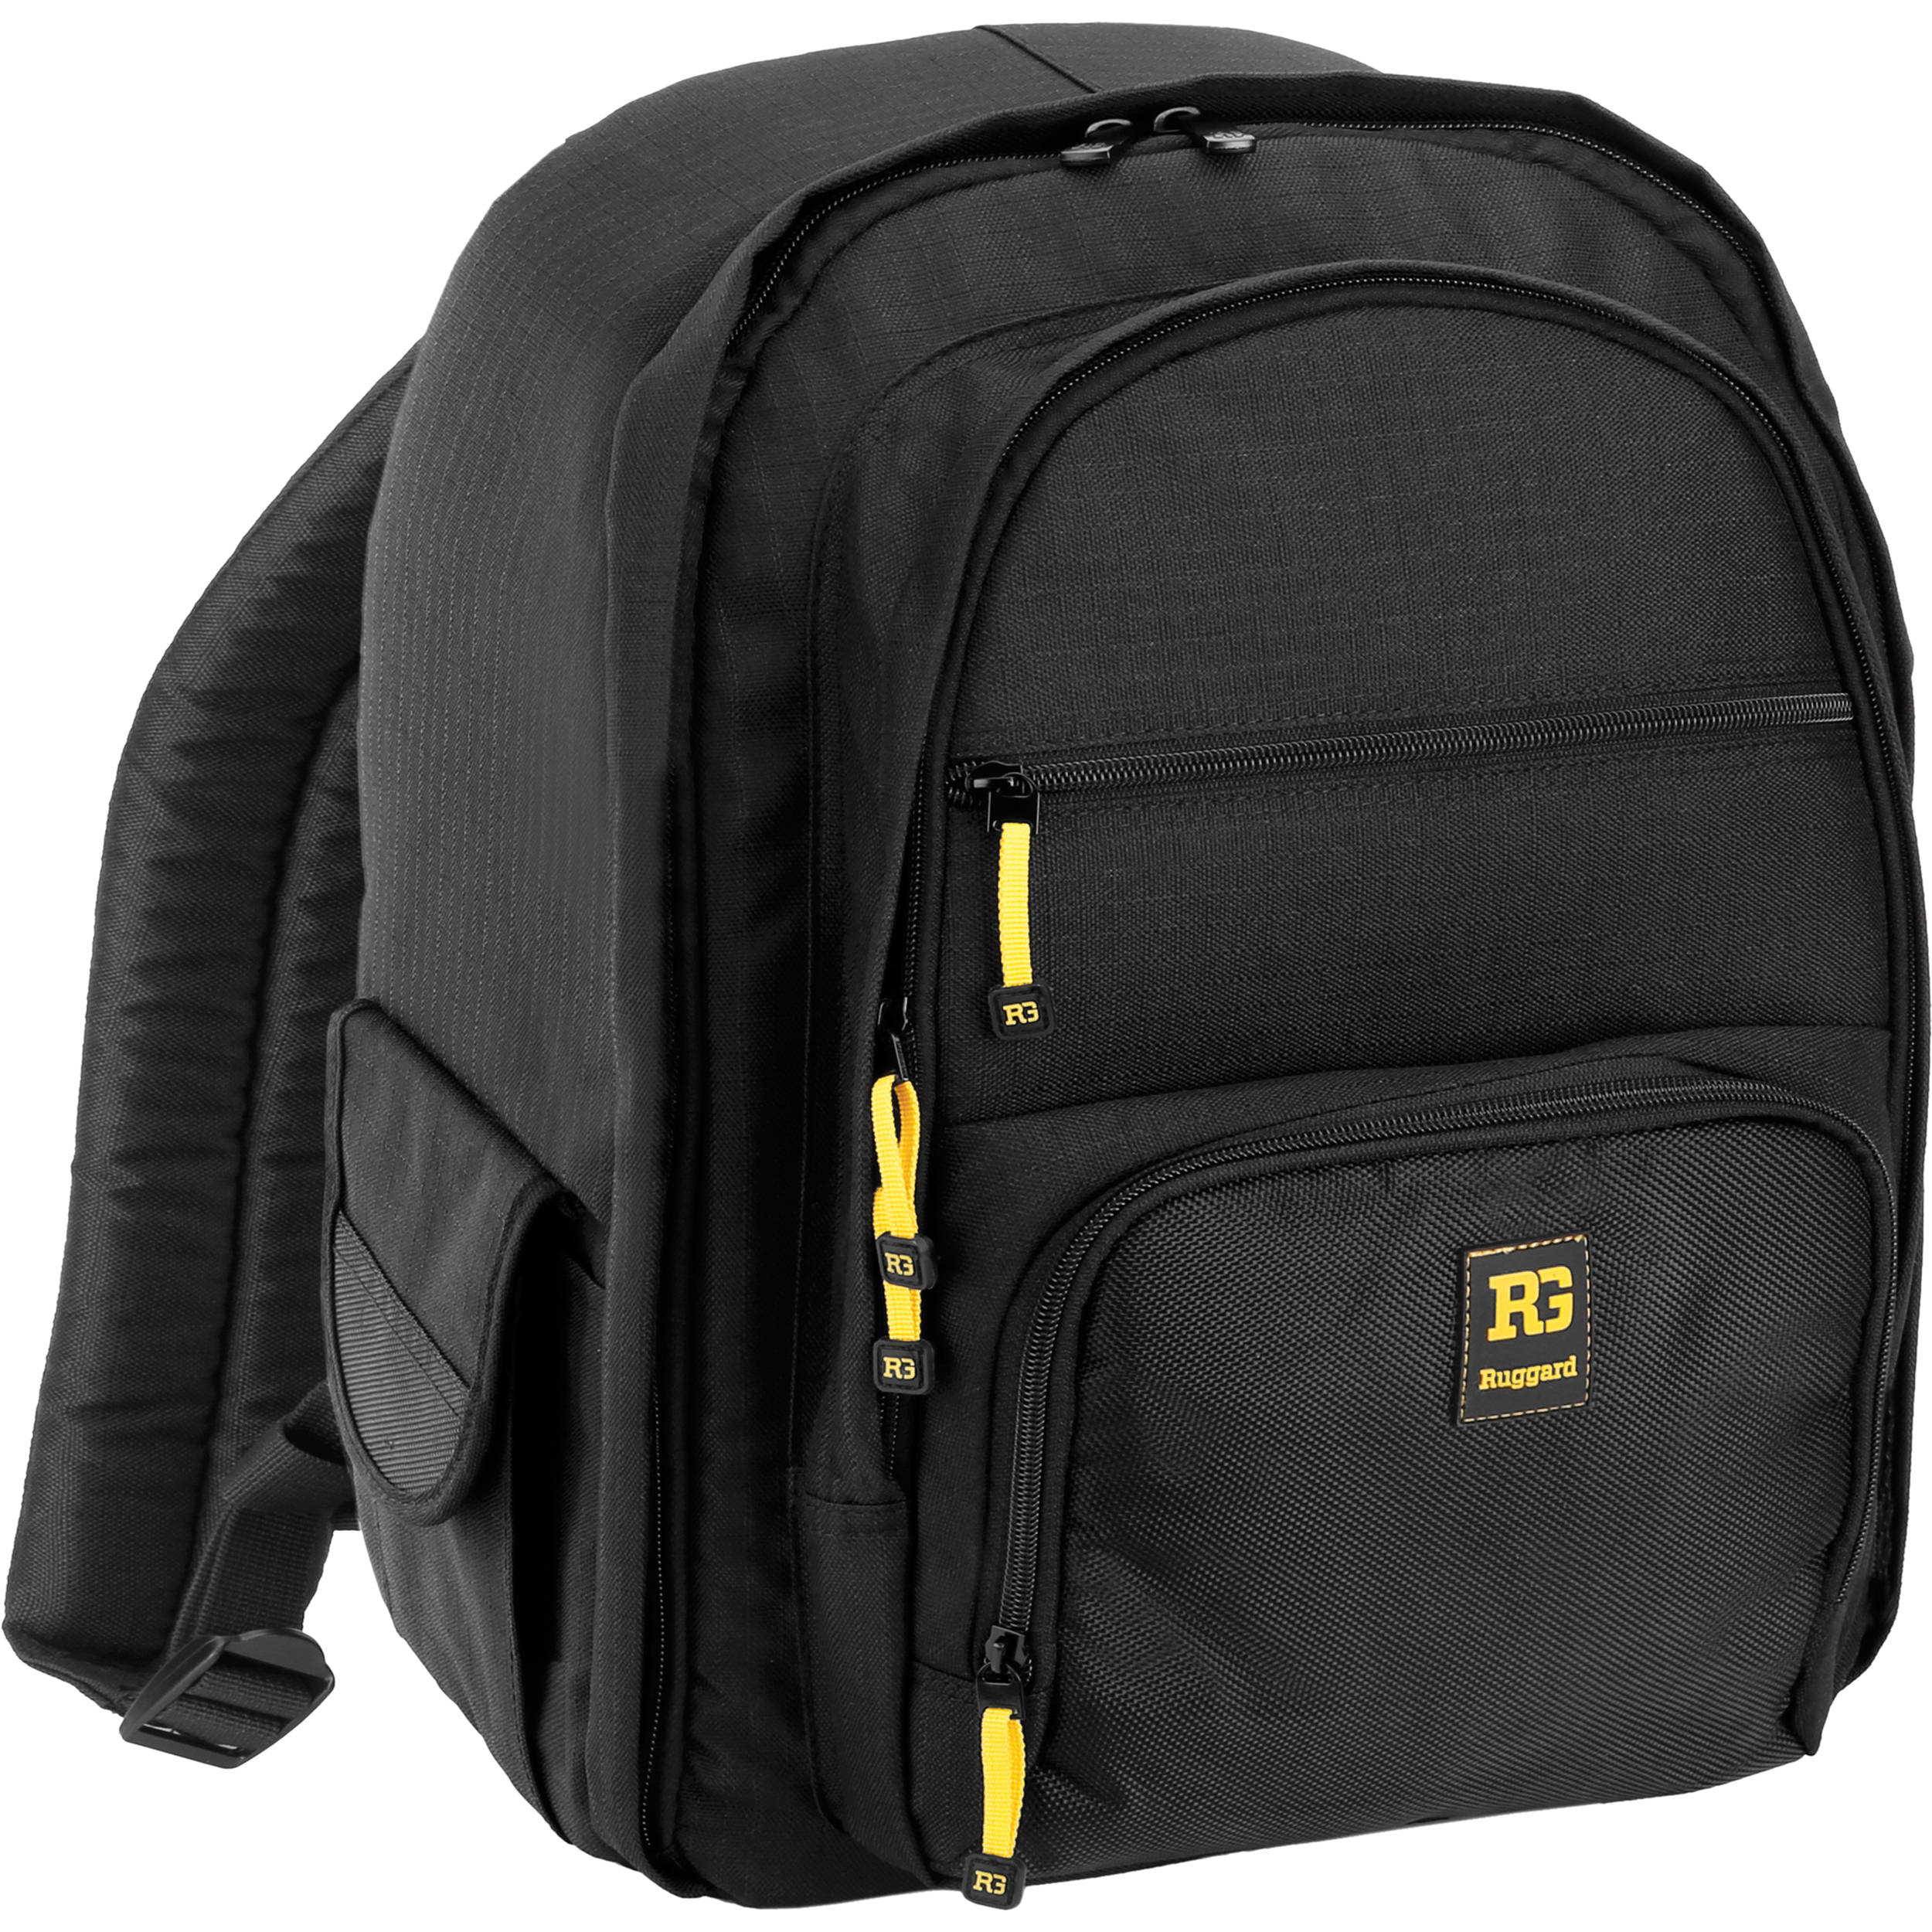 Best Store To Buy Backpacks - Crazy Backpacks